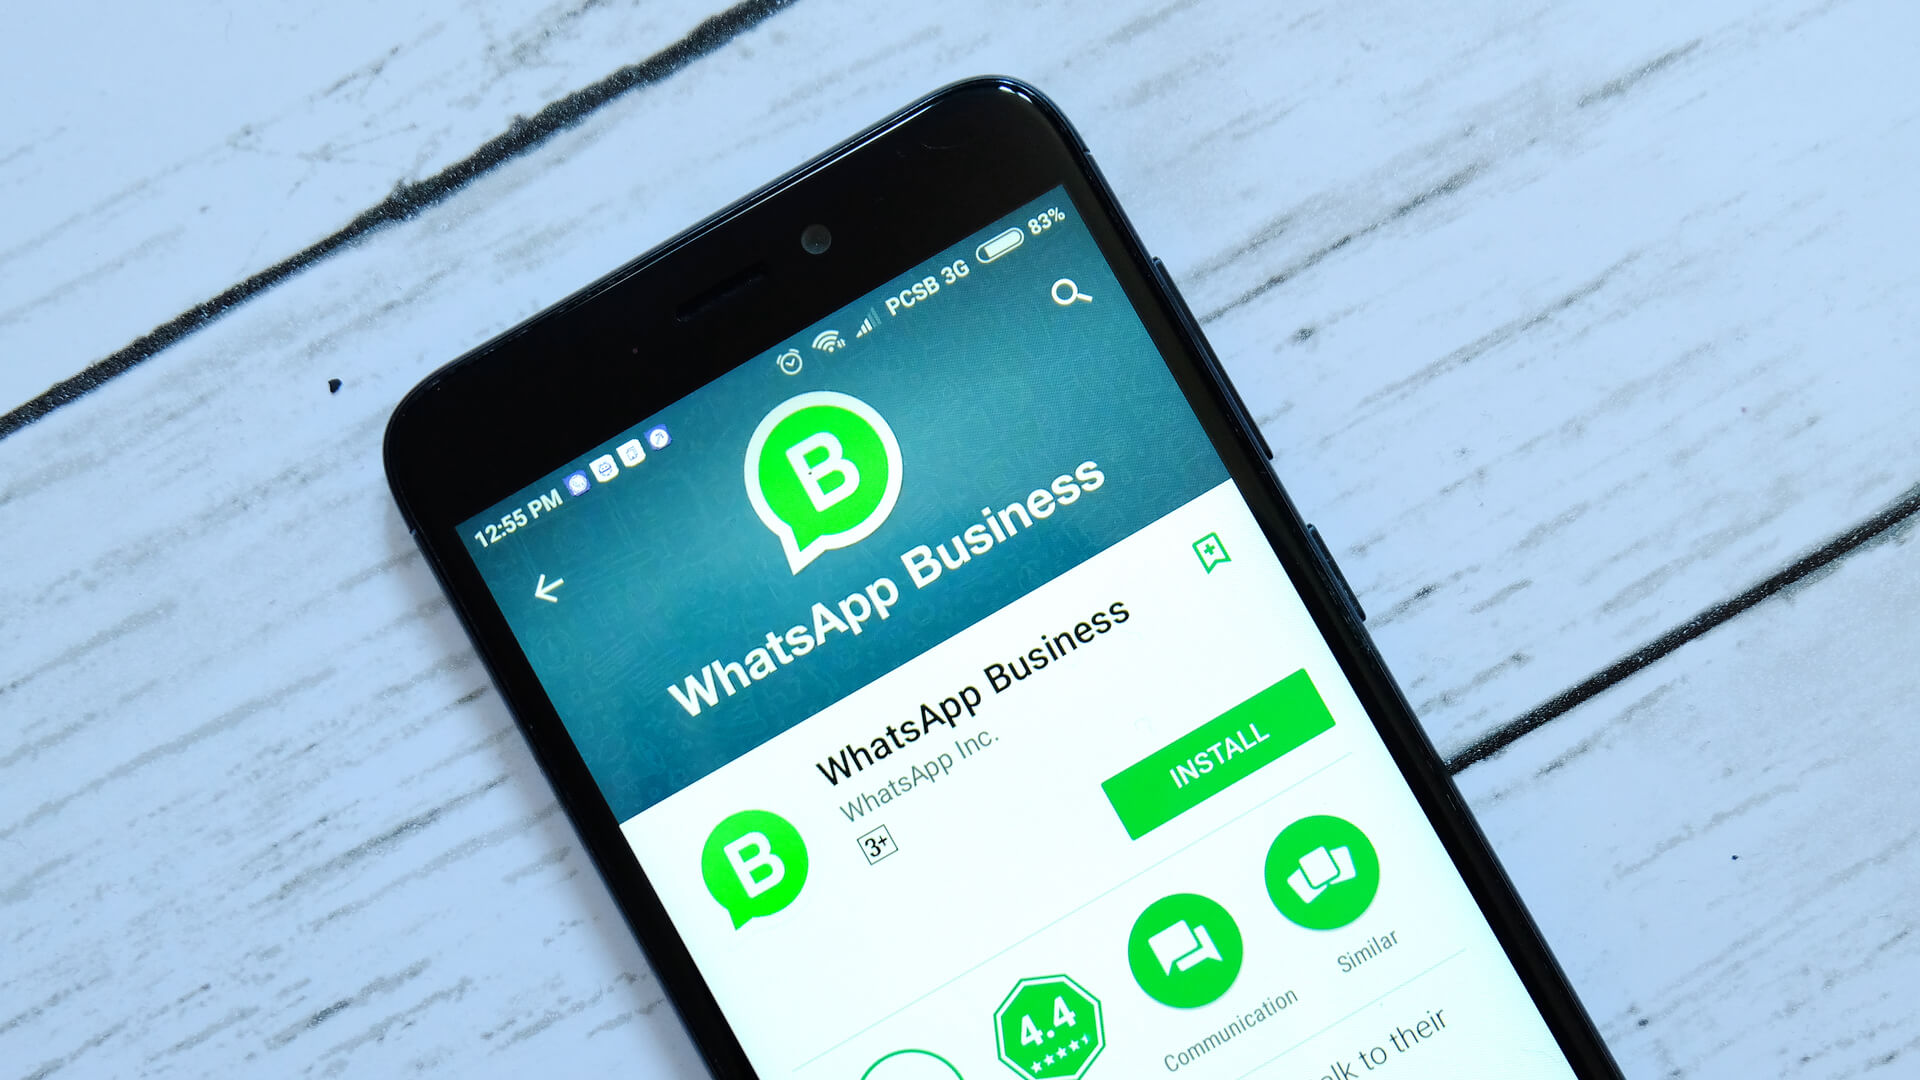 Benefits Of Using Whatsapp For Business